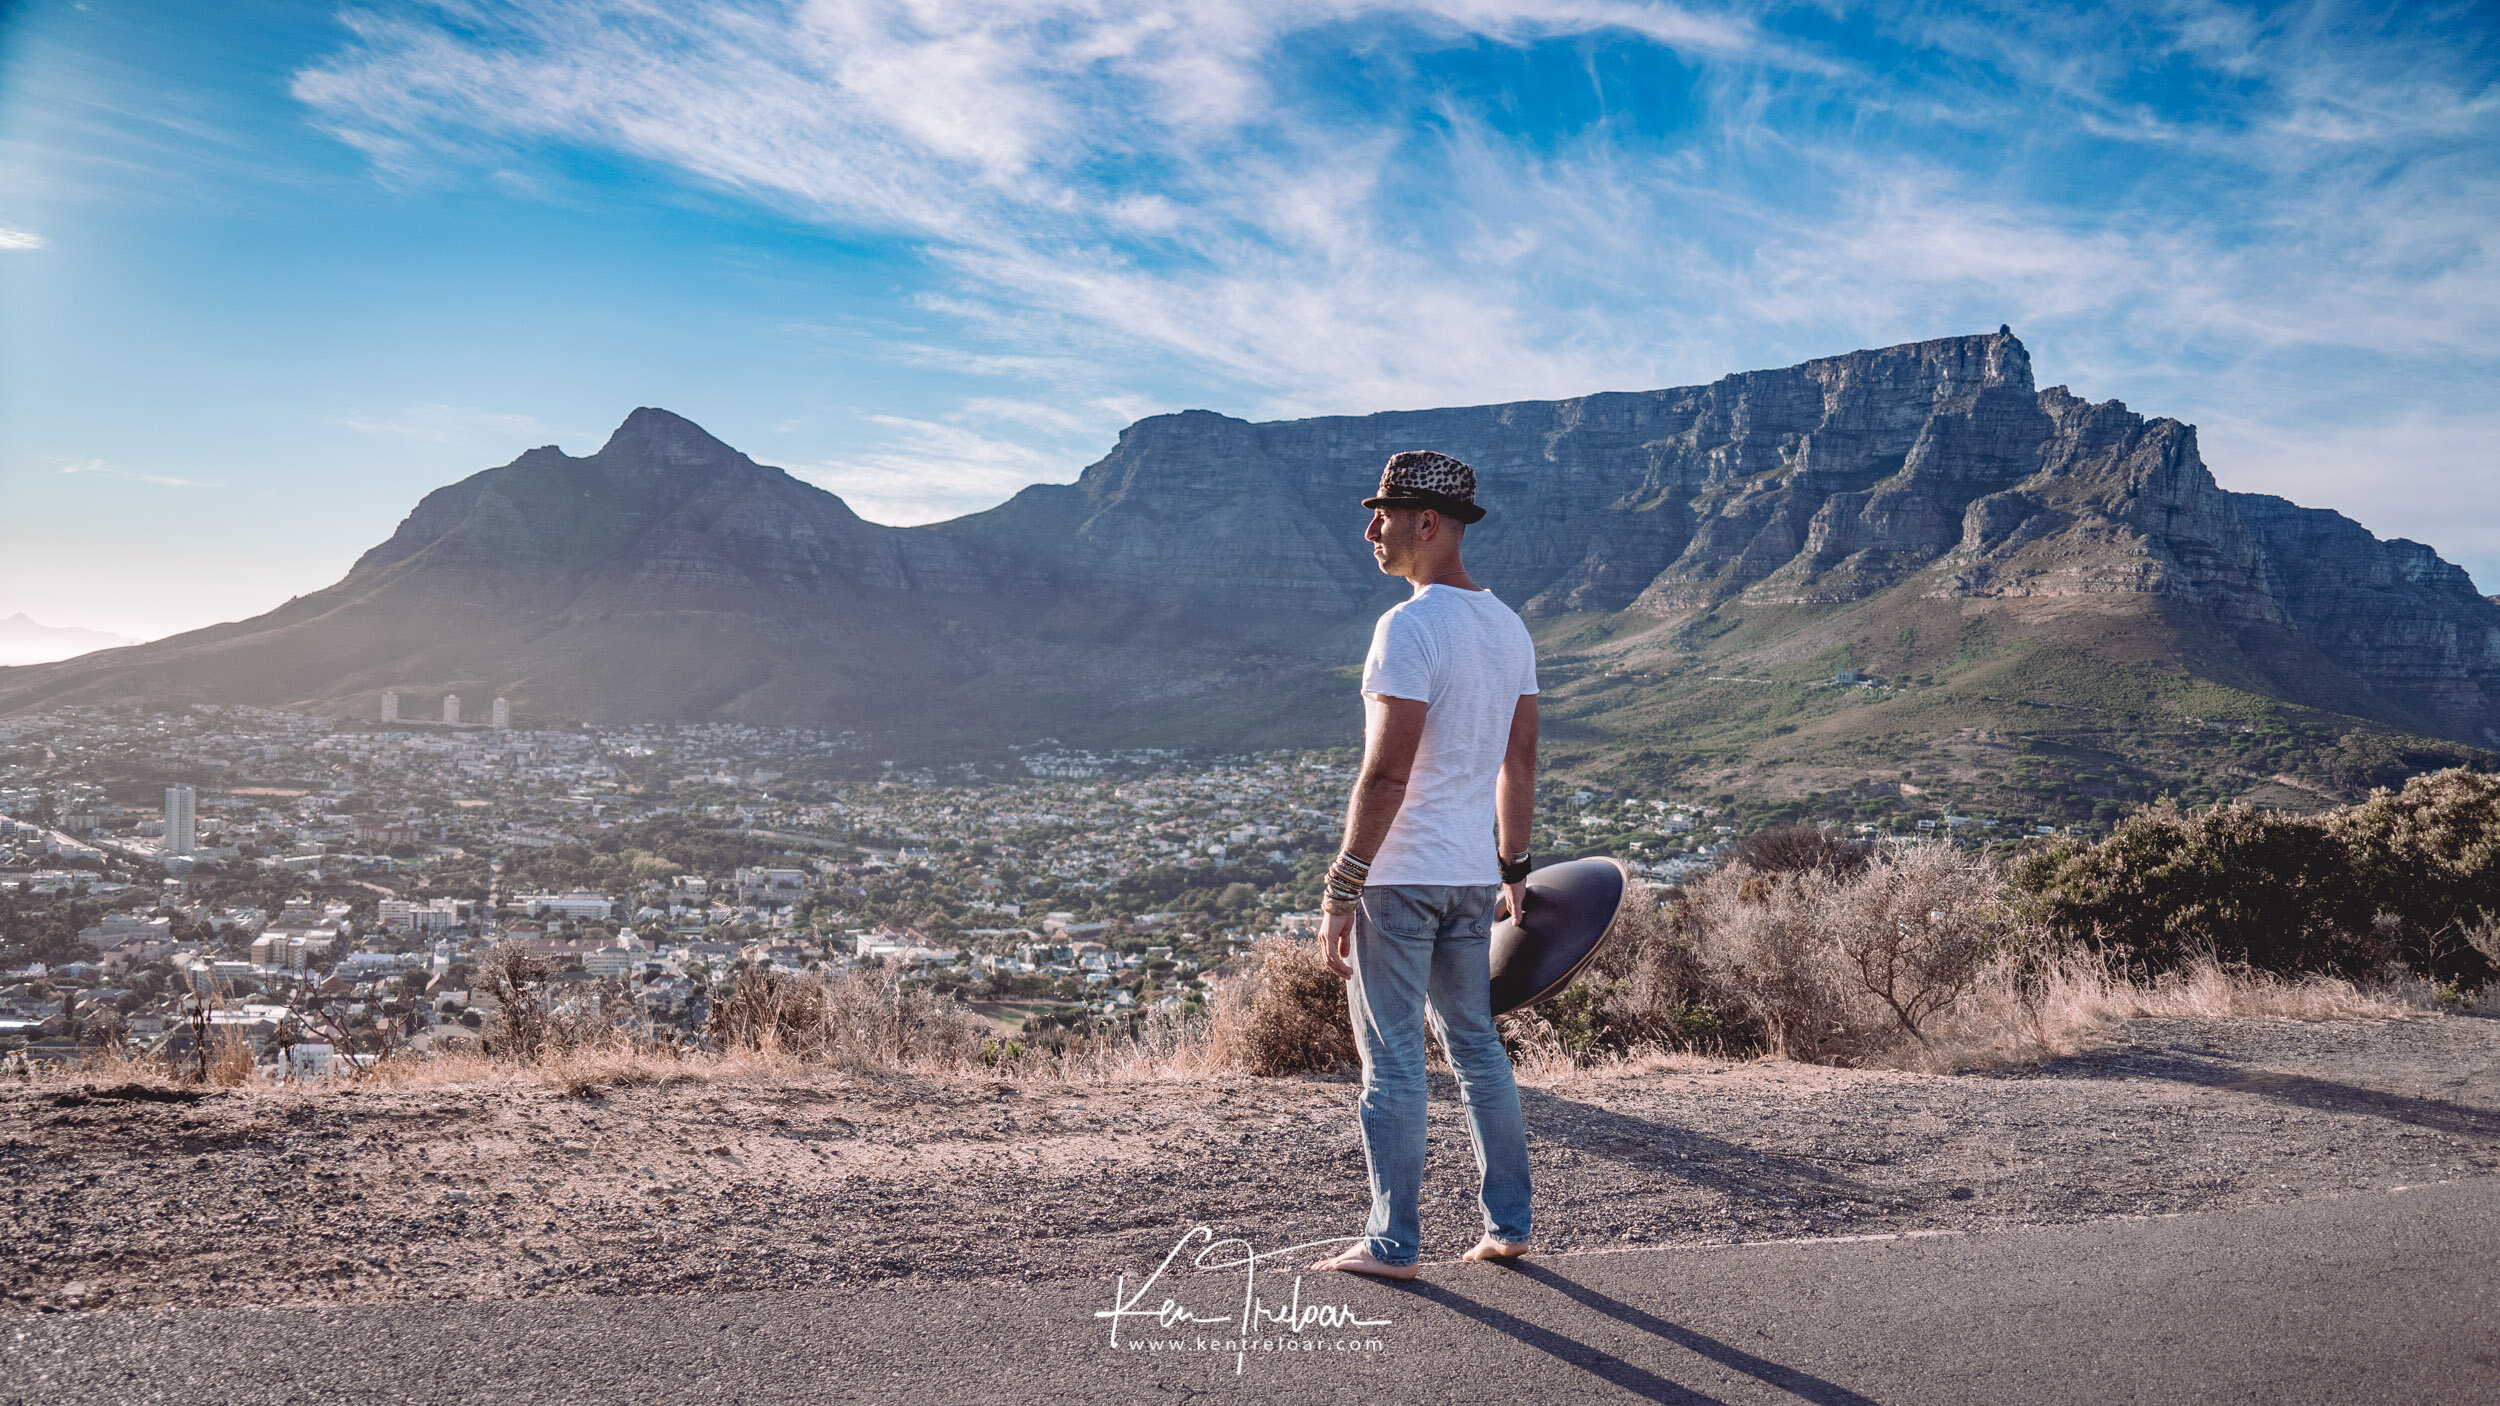 Marco Selvaggio - Signal Hill, Lions head, Table Mountain, Cape Town South Africa - Image by Ken Treloar Photography 2019-6.jpg